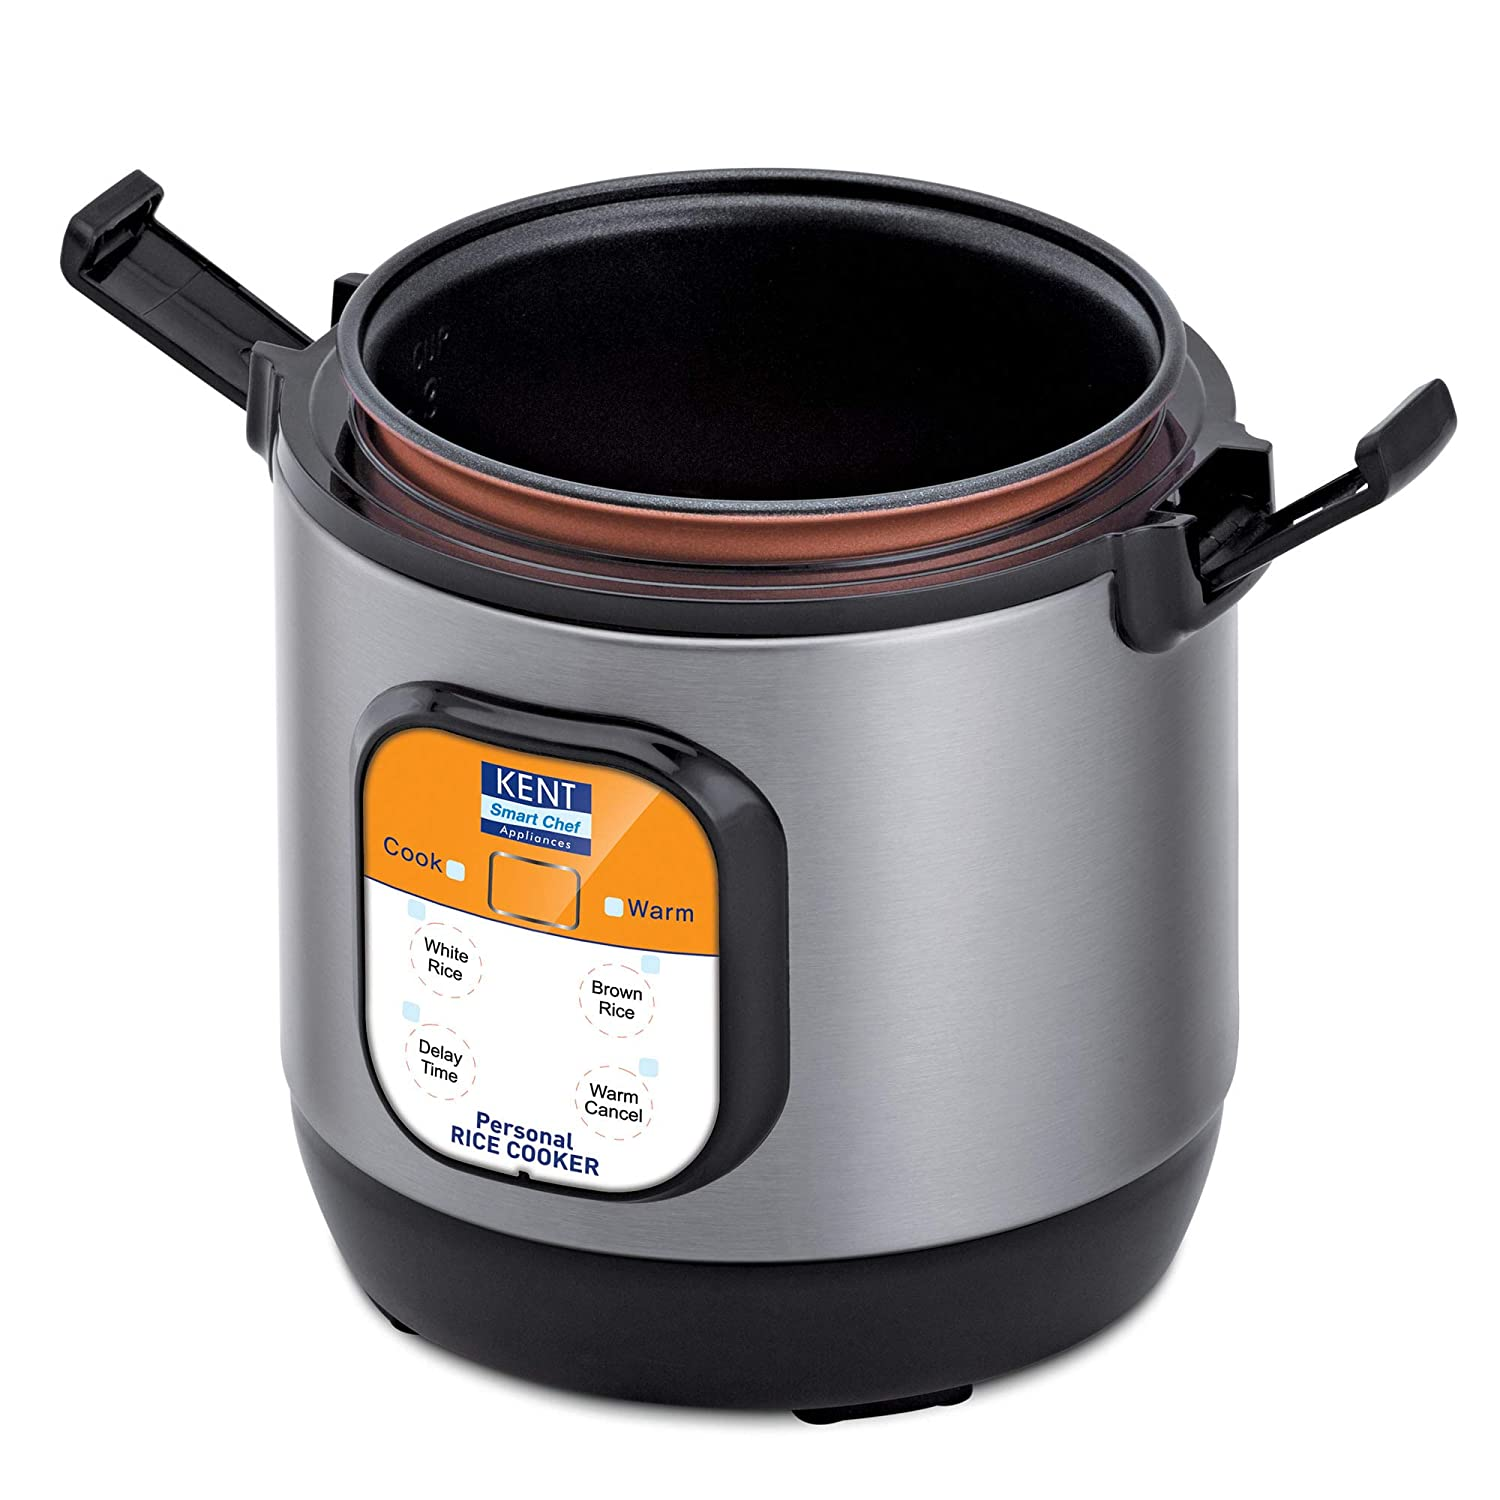 Open-Box & Refurbished (Unused) KENT Personal Rice Cooker 0.9-litres 180-Watt (Black and Silver) kida.in